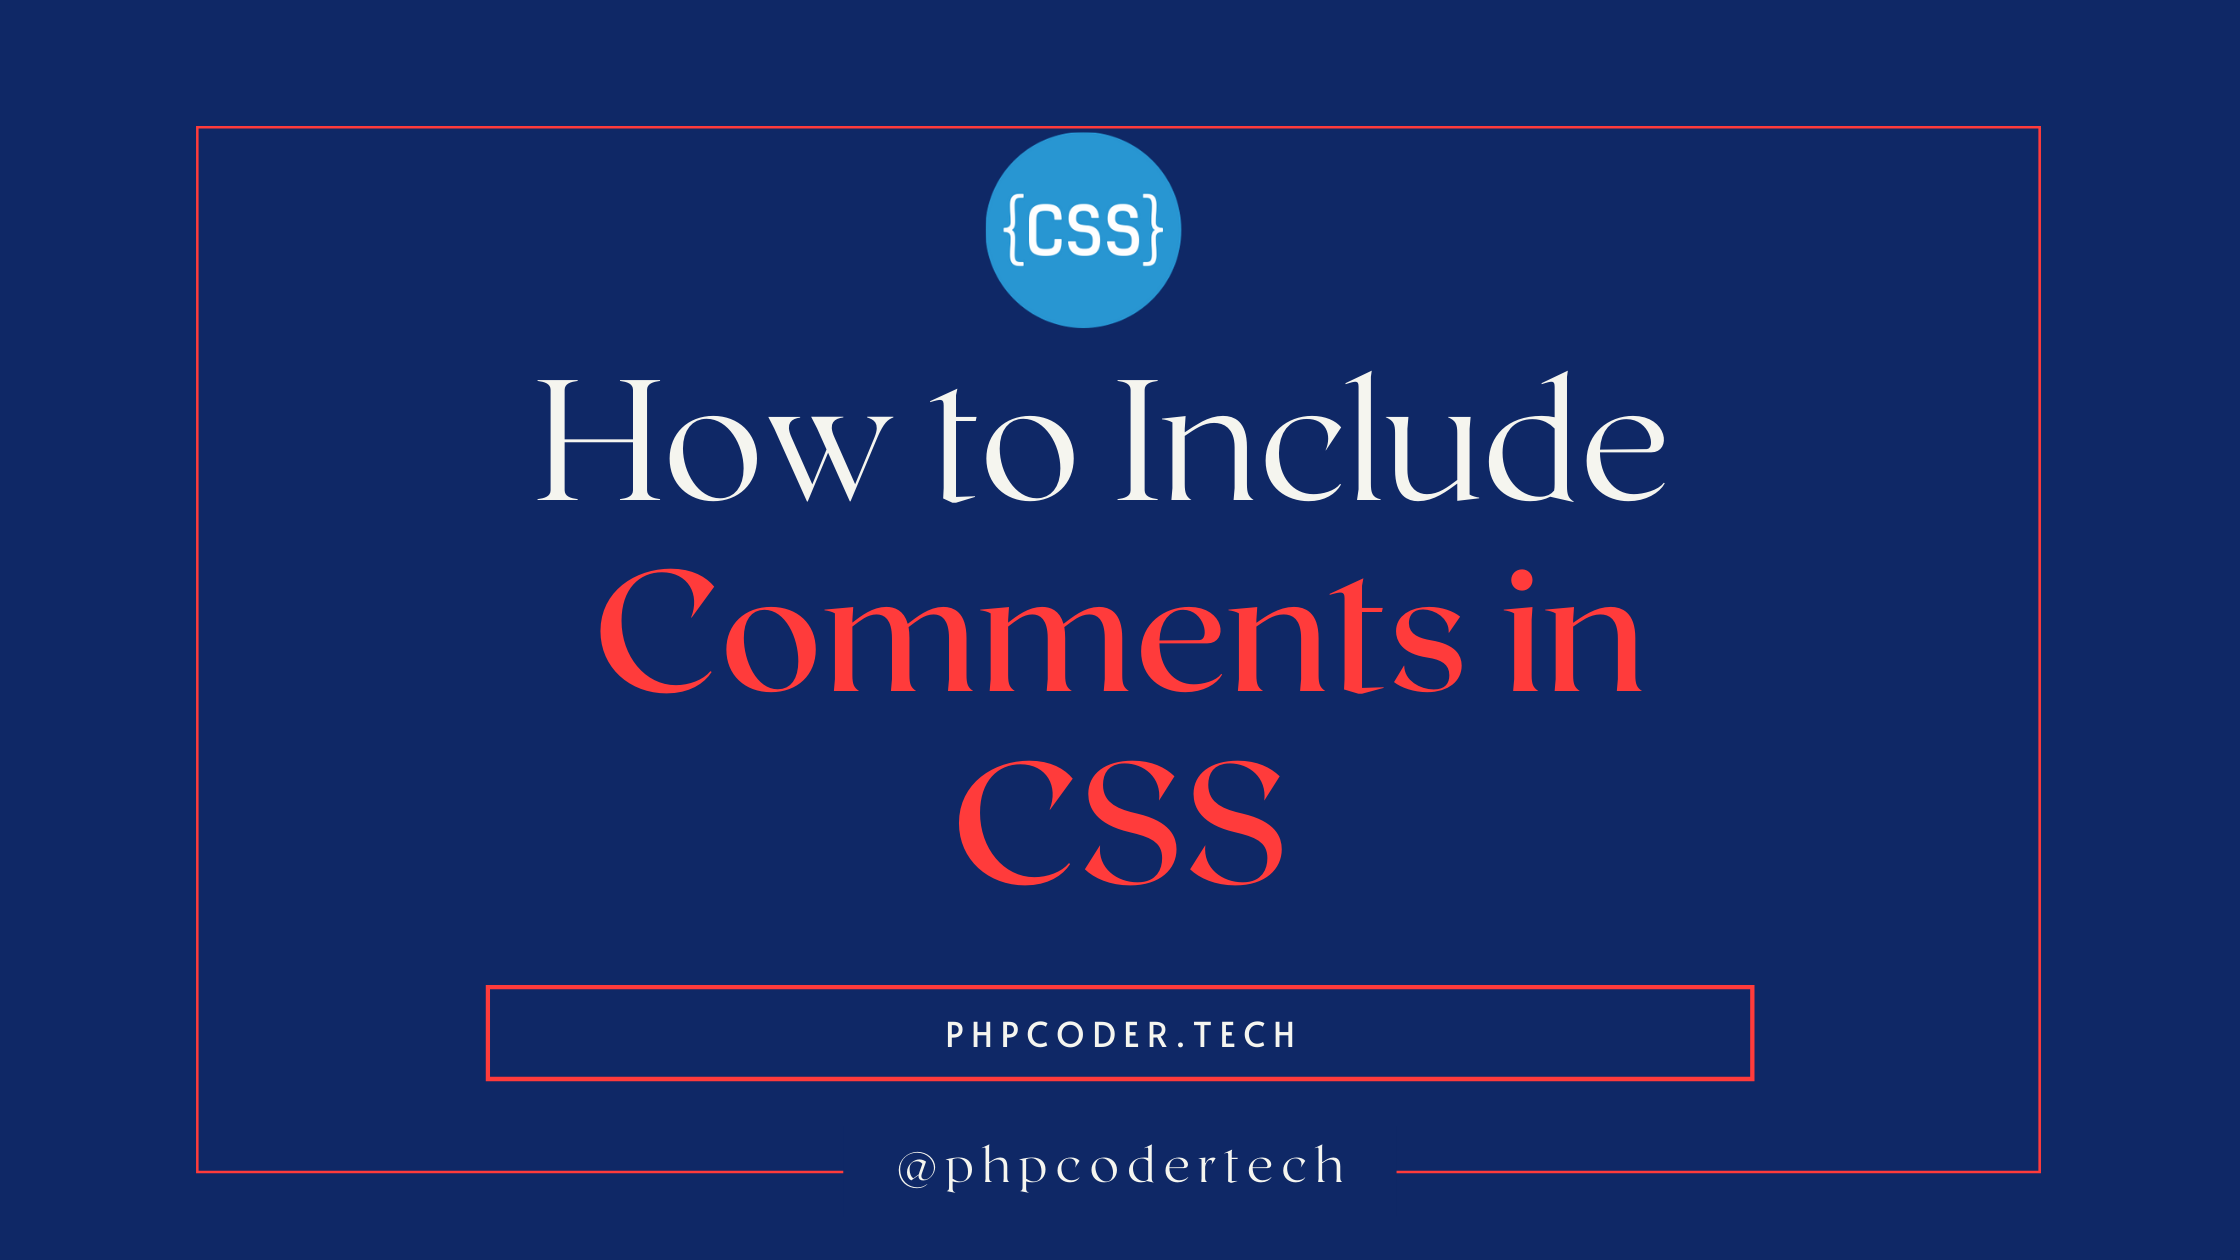 How to Include Comments in CSS